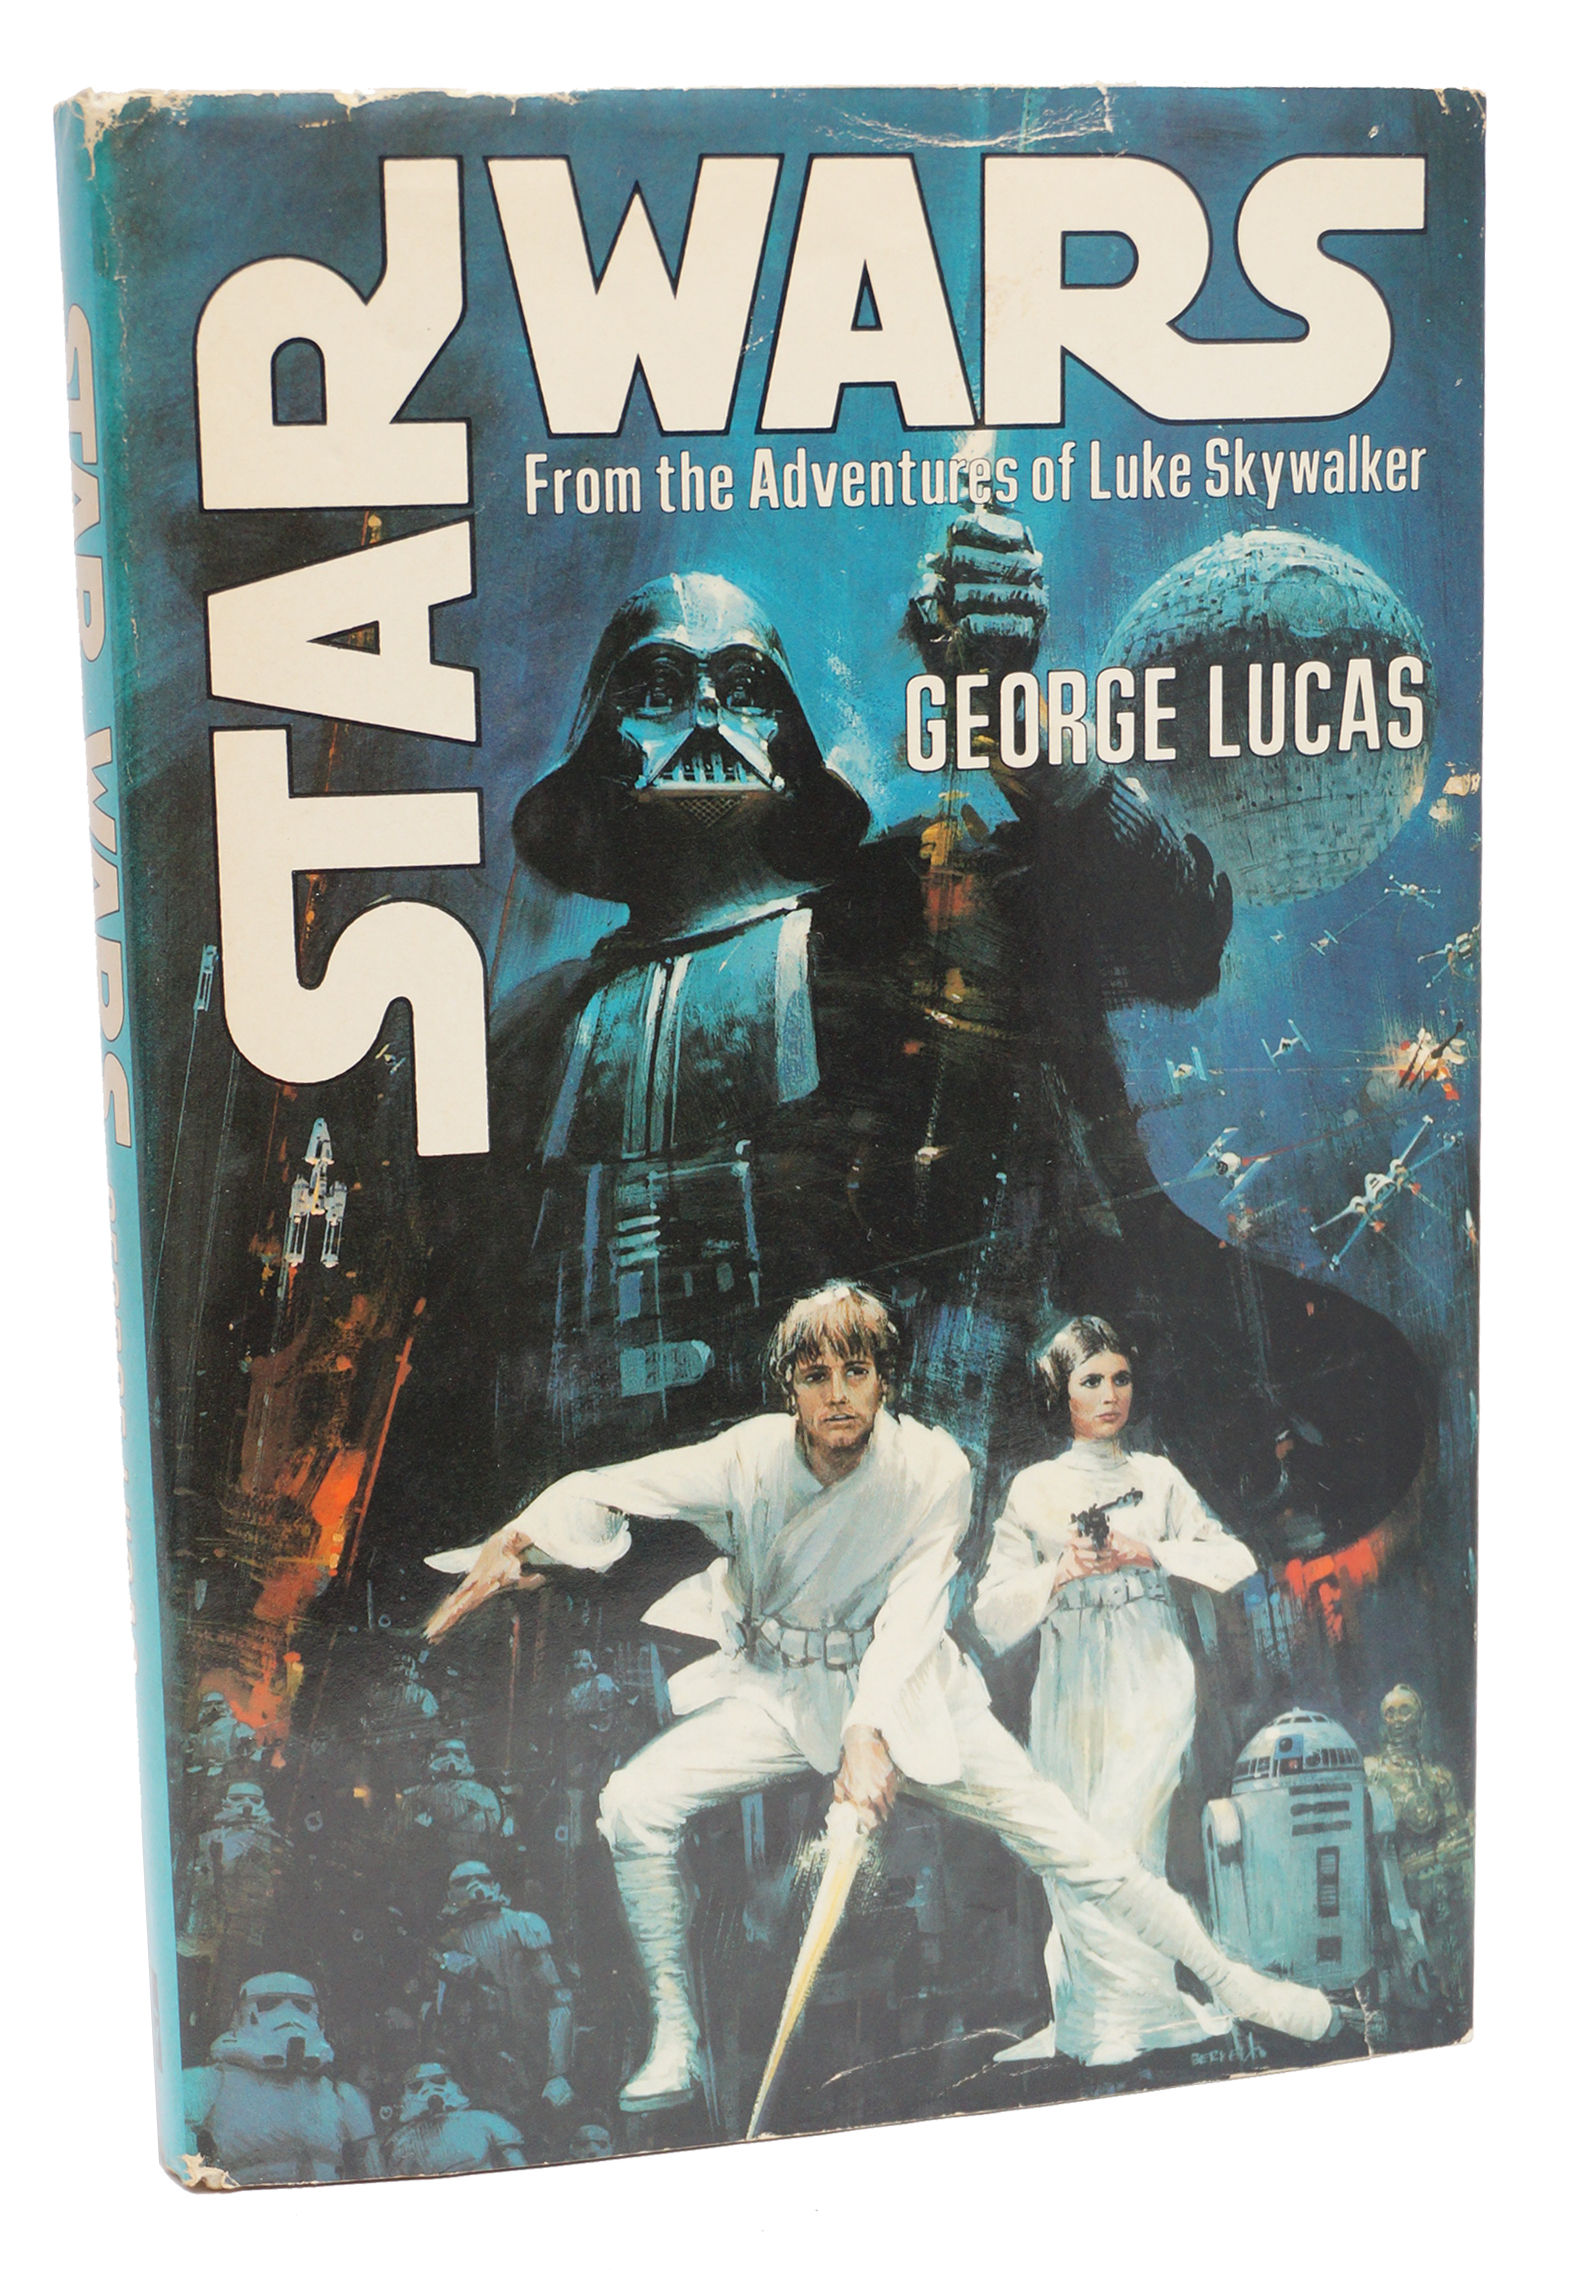 a literary analysis of the novel star wars a new hope by george lucas Star wars reviews: what critics thought of the 1977 film when it was first released this is the writer-director george lucas's own film star wars, (aka star wars: episode iv - a new hope), chewbacca.